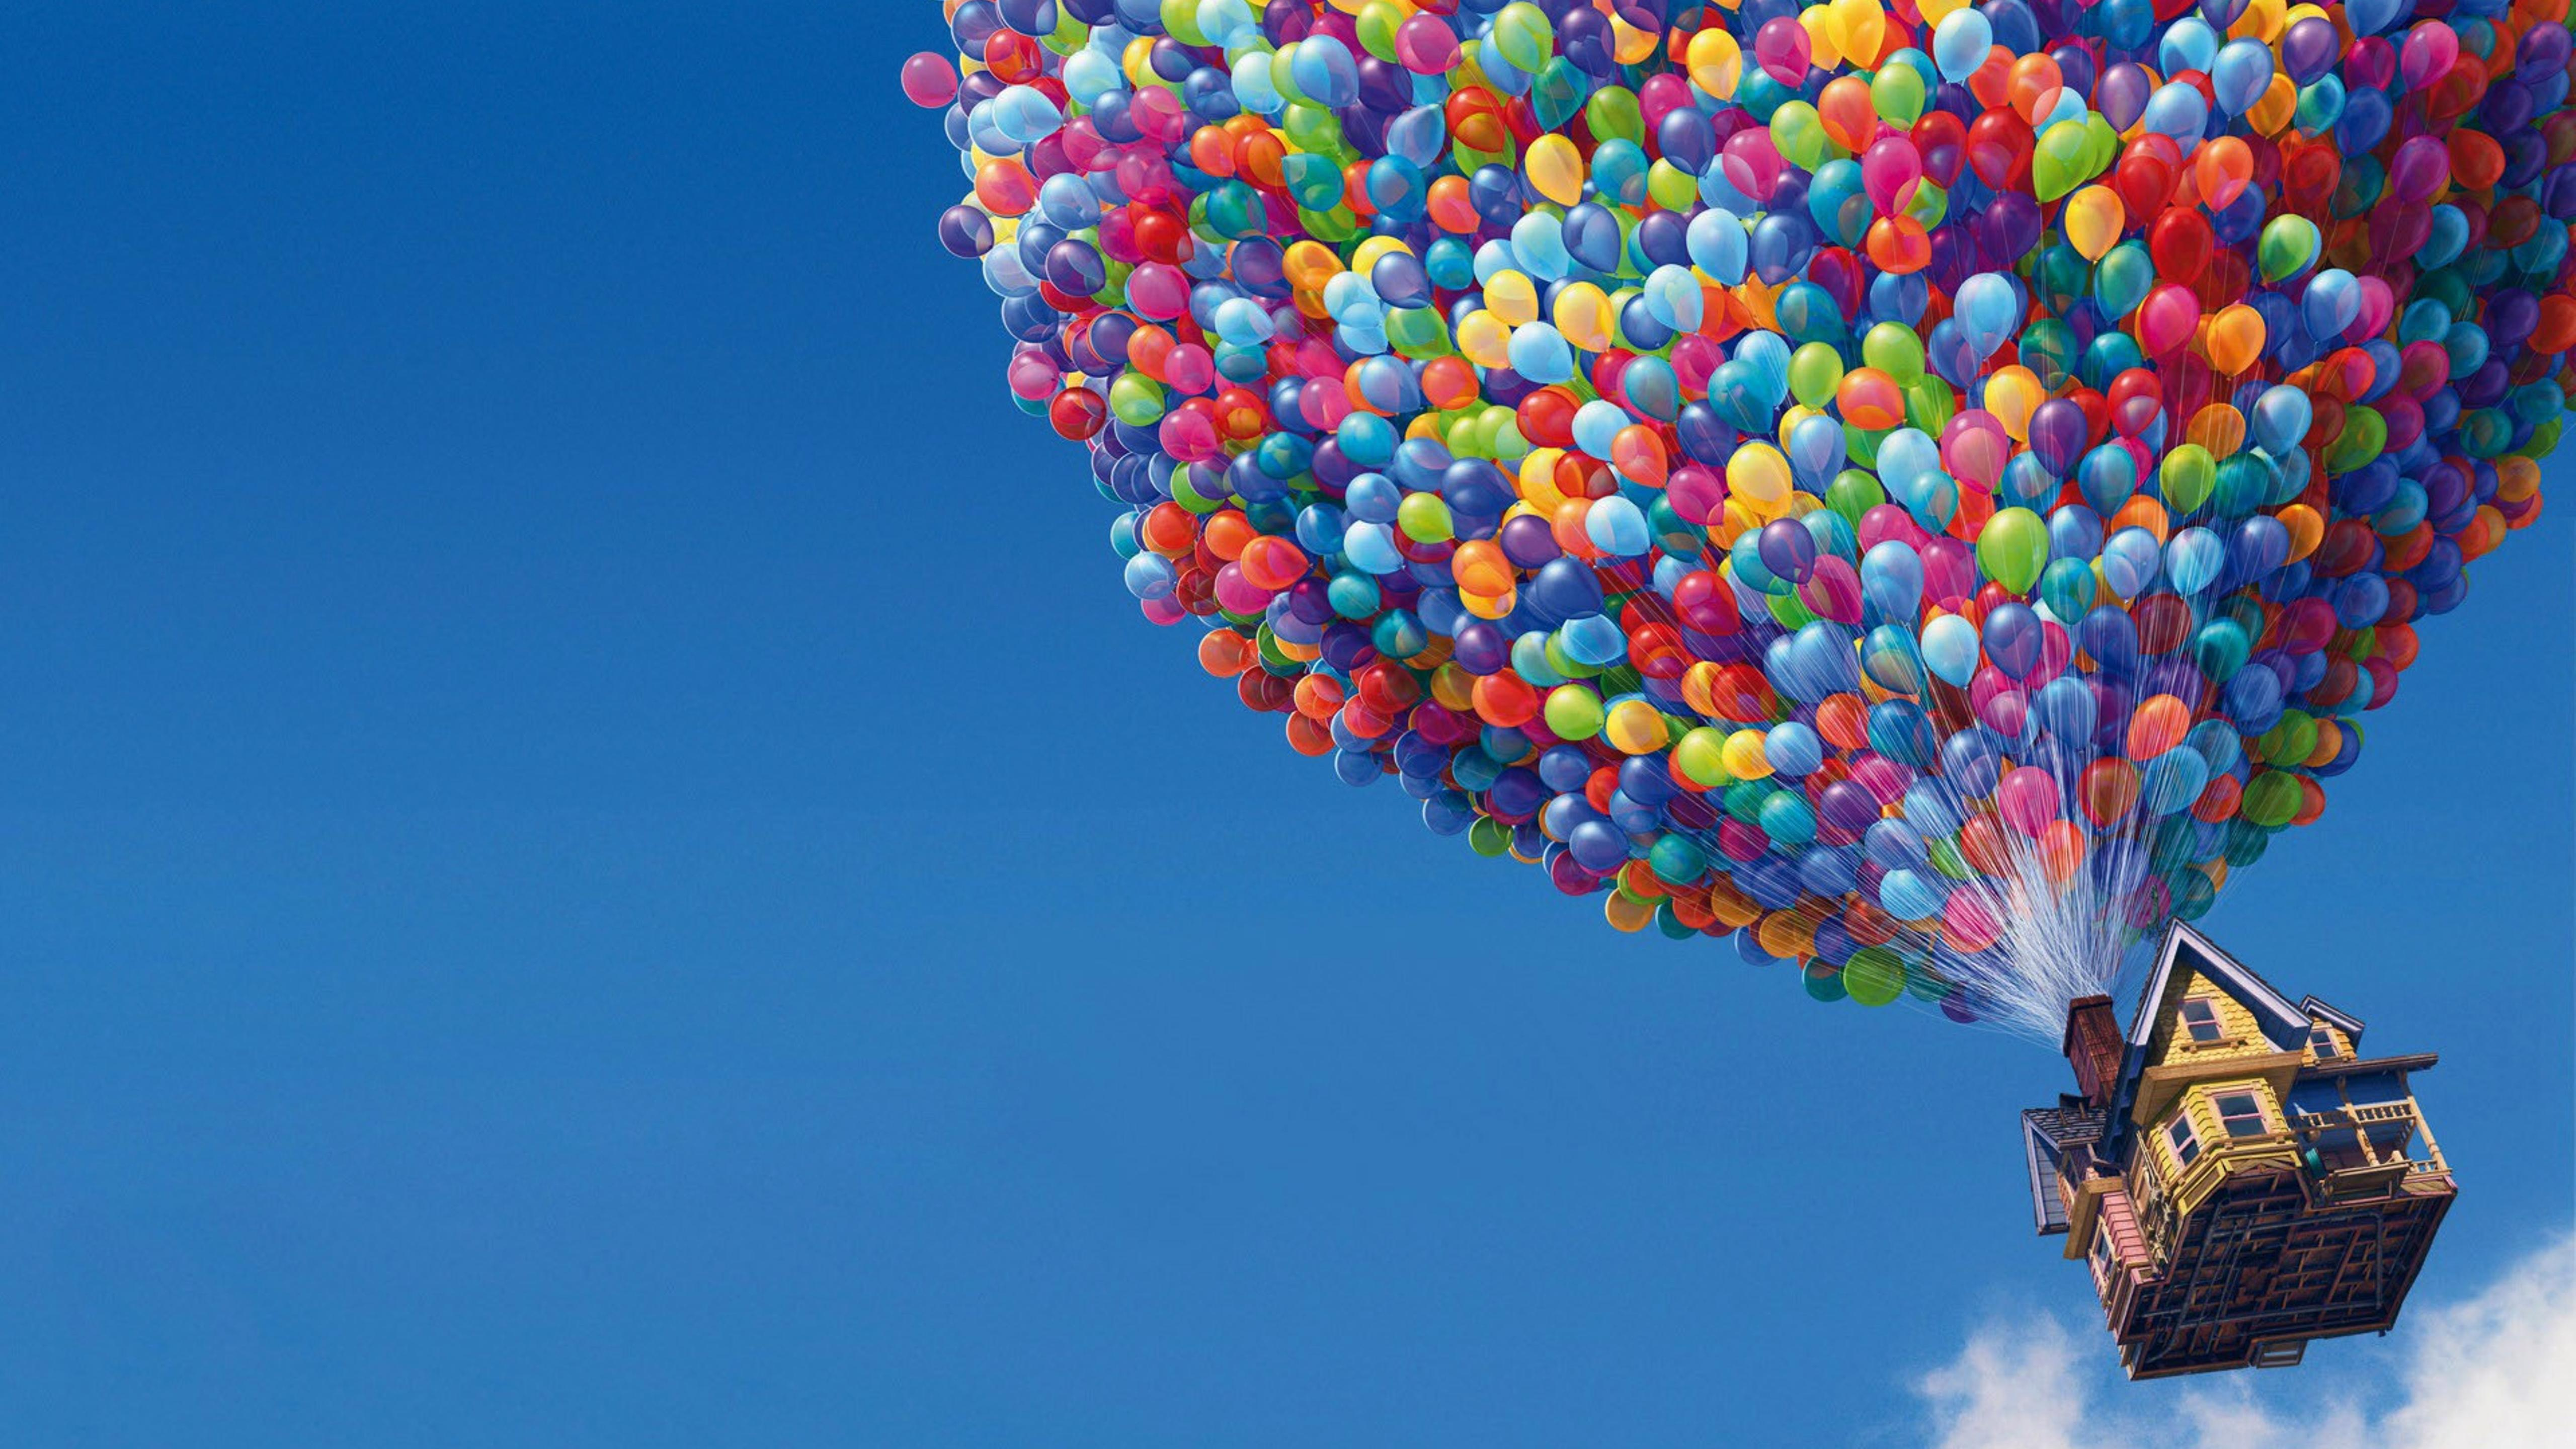 House With Thousands Of Colorful Ballons Afloat Wallpaper Download 5120x2880